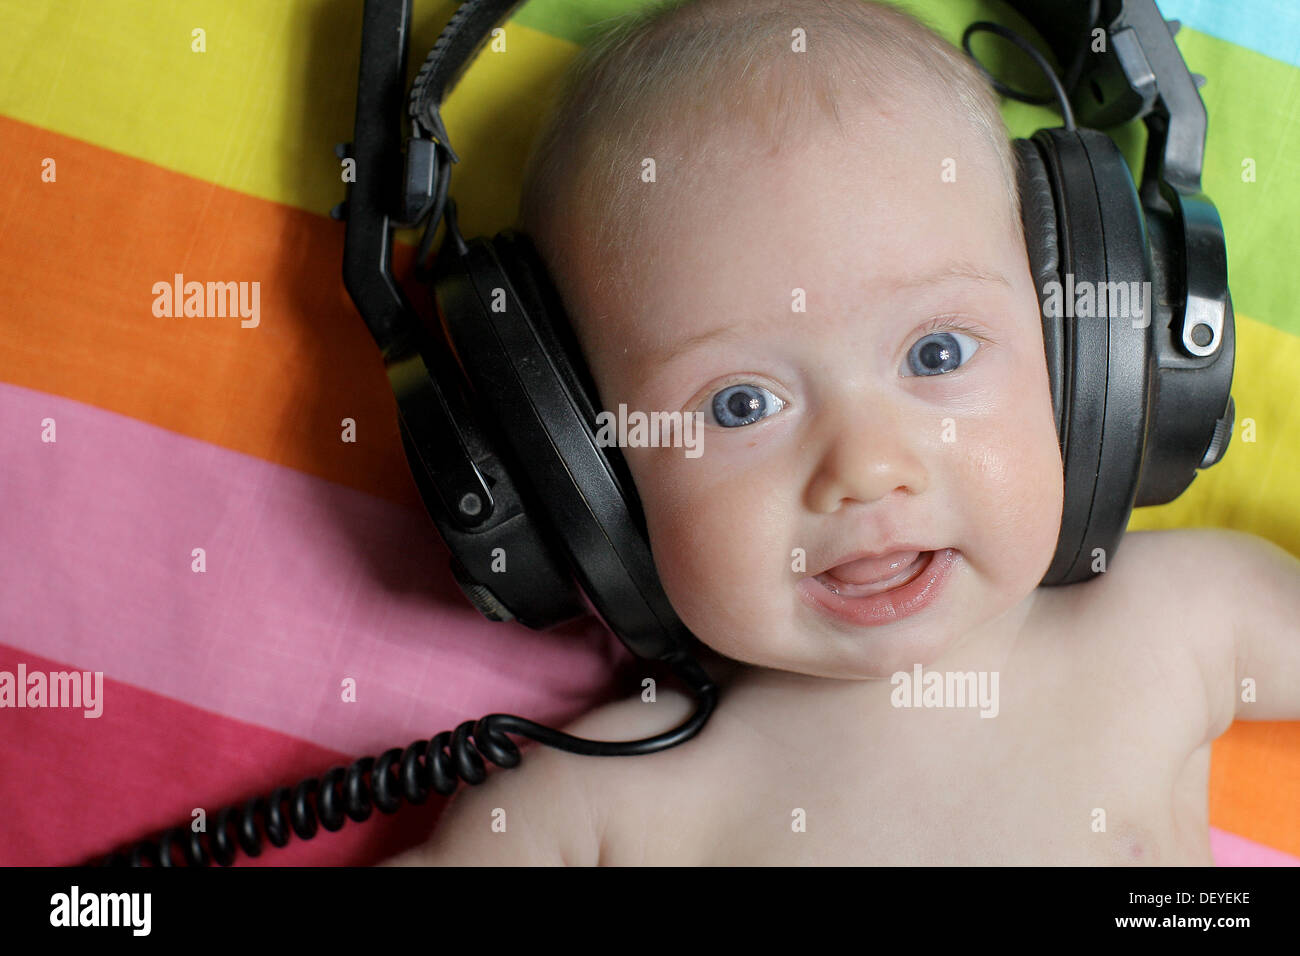 Baby girl listening/listens to music on headphones. Baby wearing headphones. - Stock Image